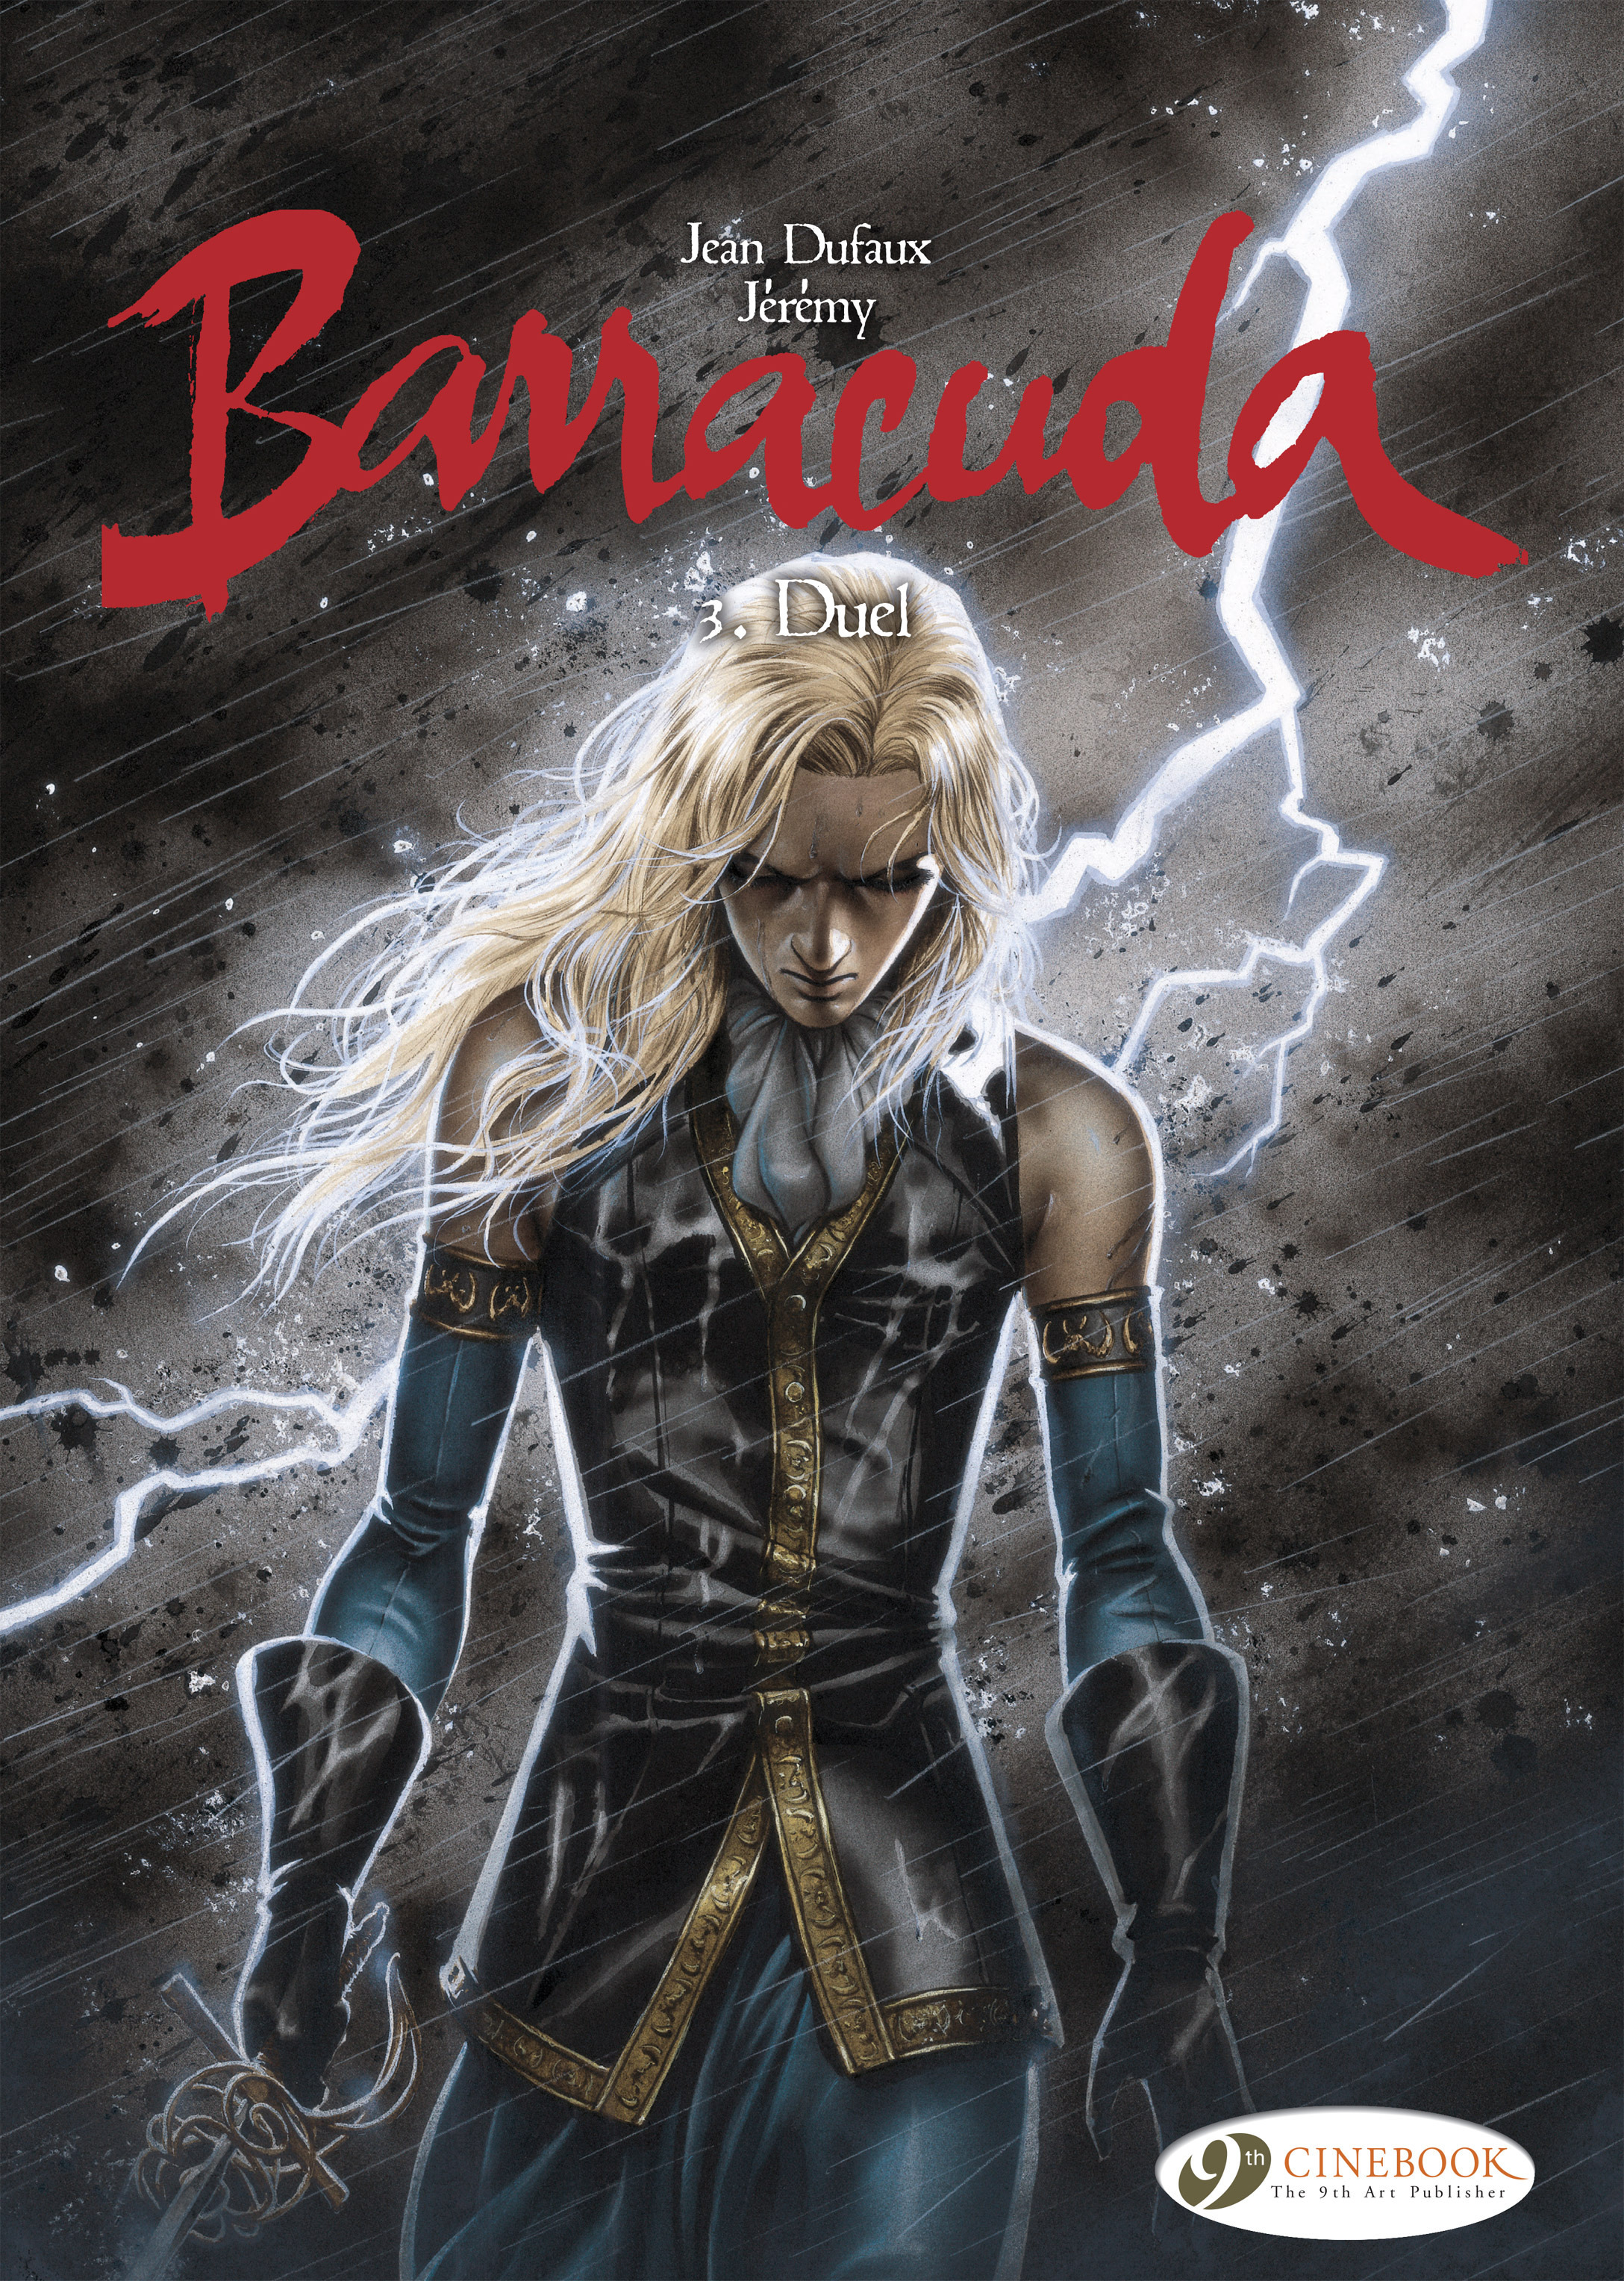 Read online Barracuda comic -  Issue #3 - 1